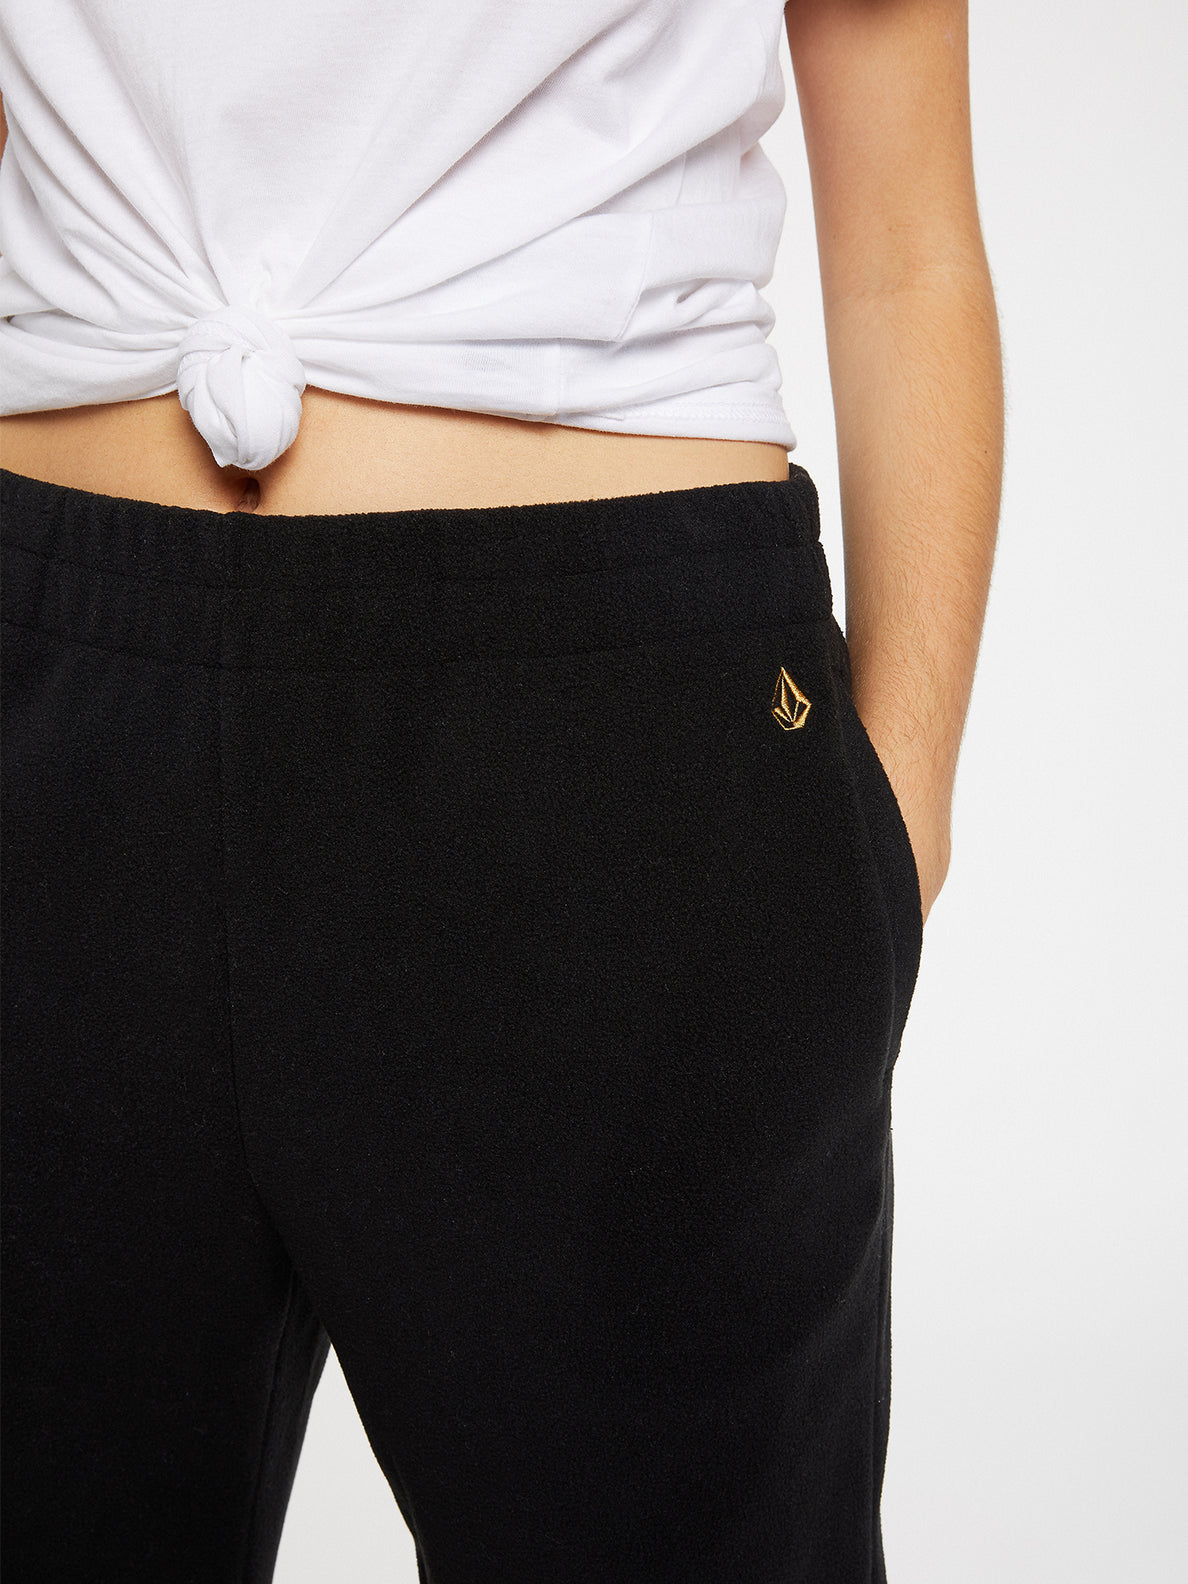 Up In The Nub Pants - Black (B1232000_BLK) [09]